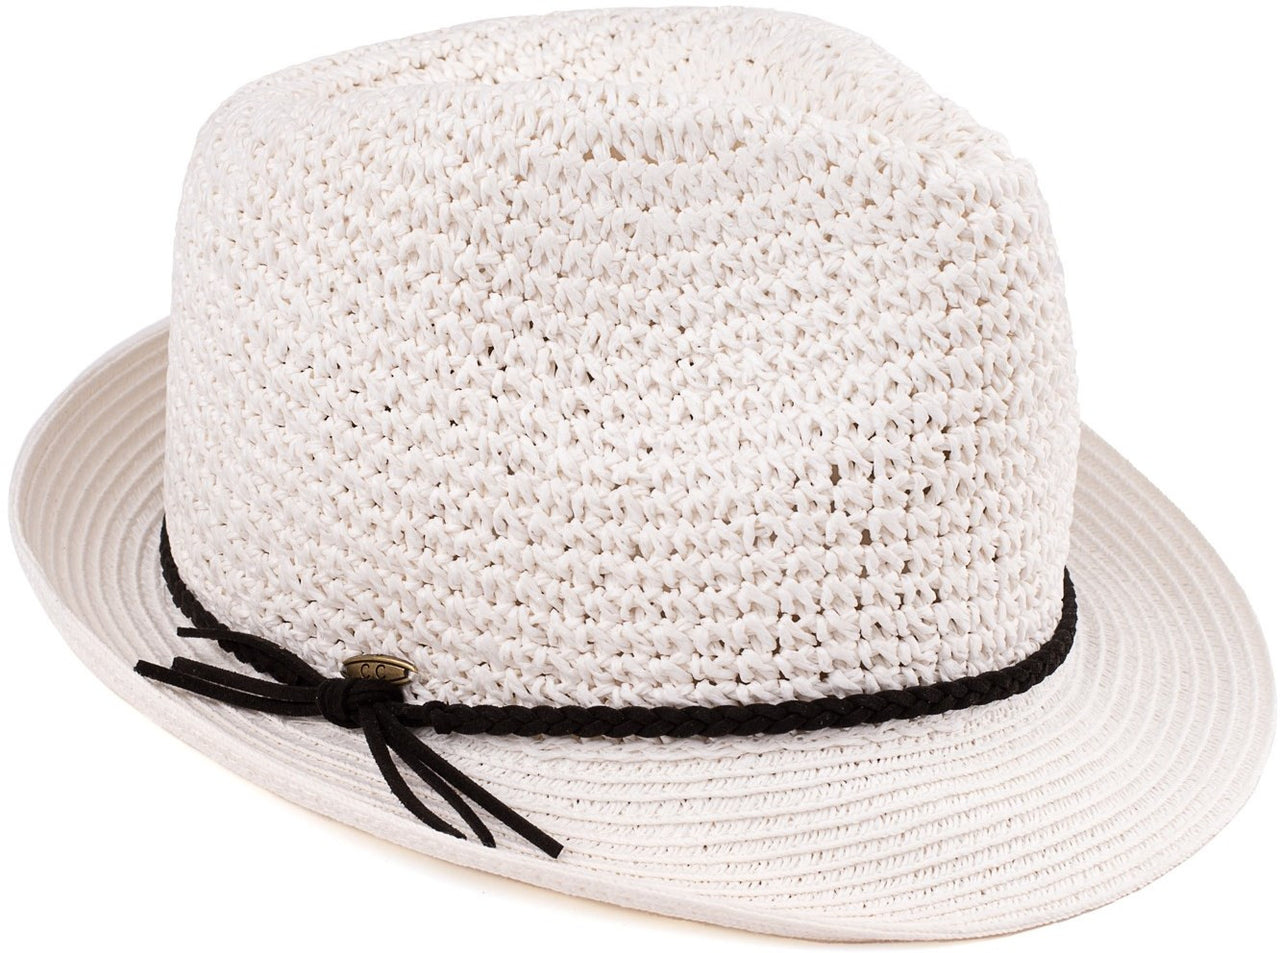 C.C Short Brim Fedora - White with Black Rope